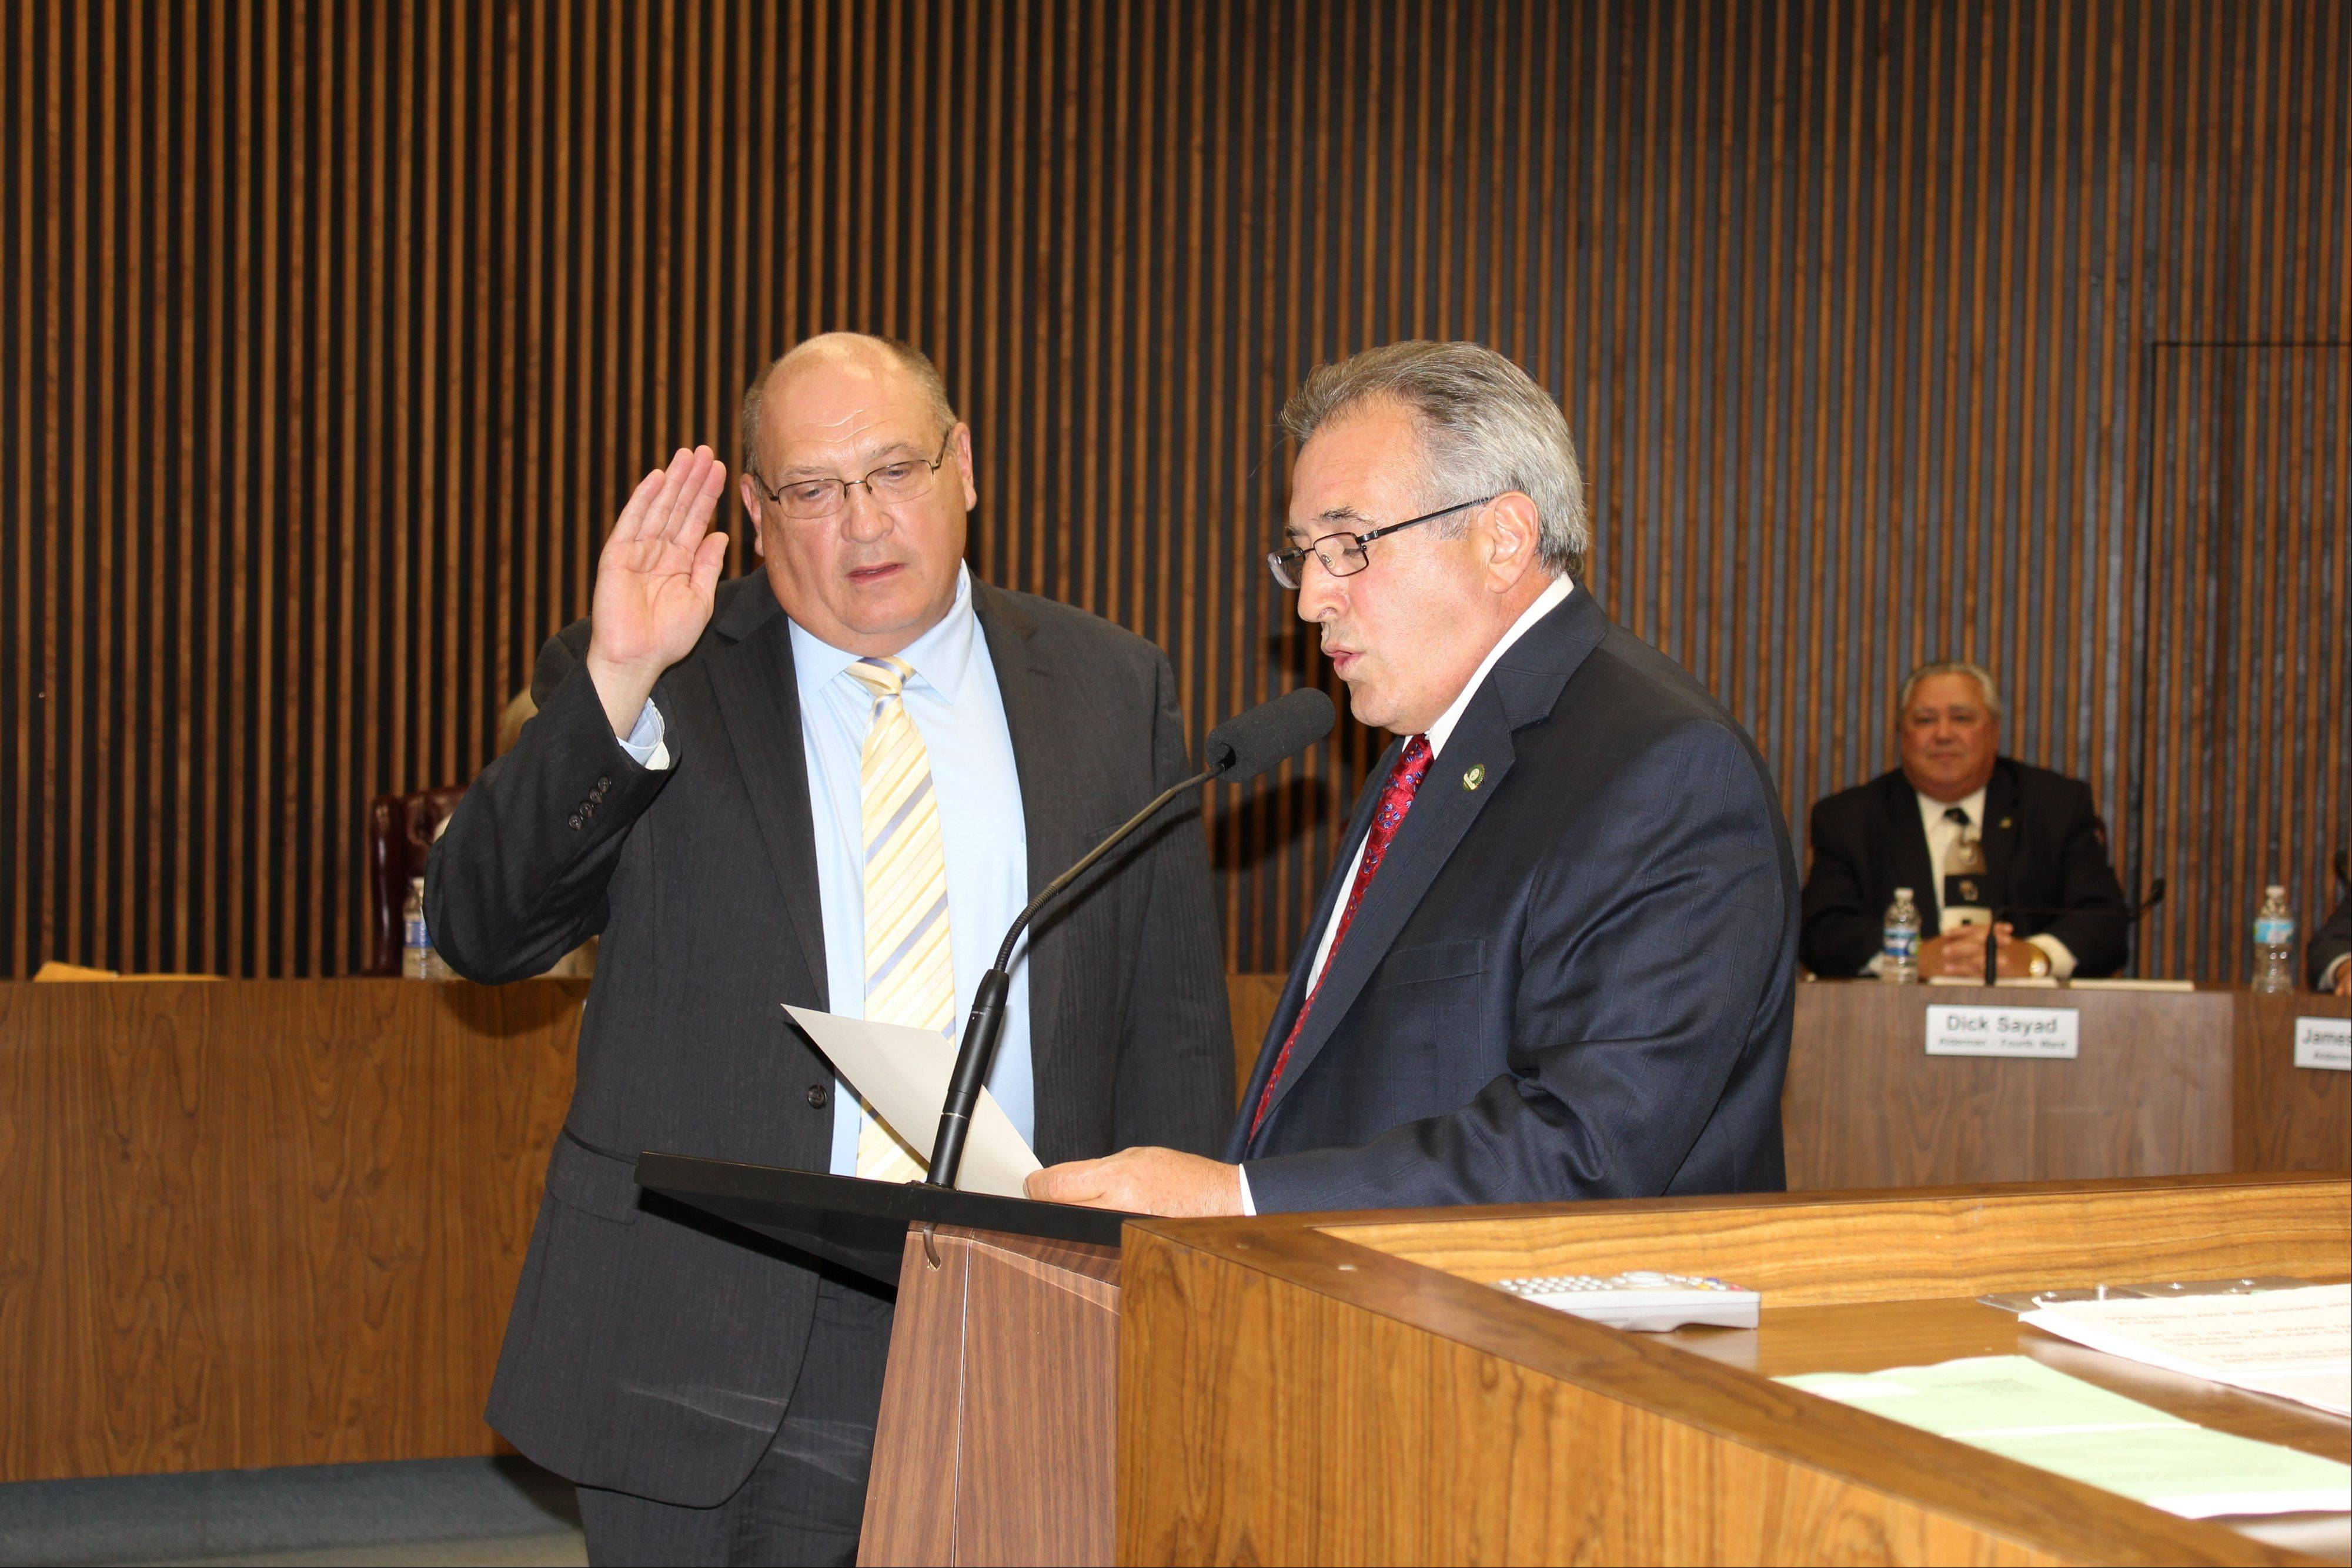 Des Plaines Mayor Marty Moylan, right, administers the oath of office to new Police Chief William Kushner at Tuesday's city council meeting.